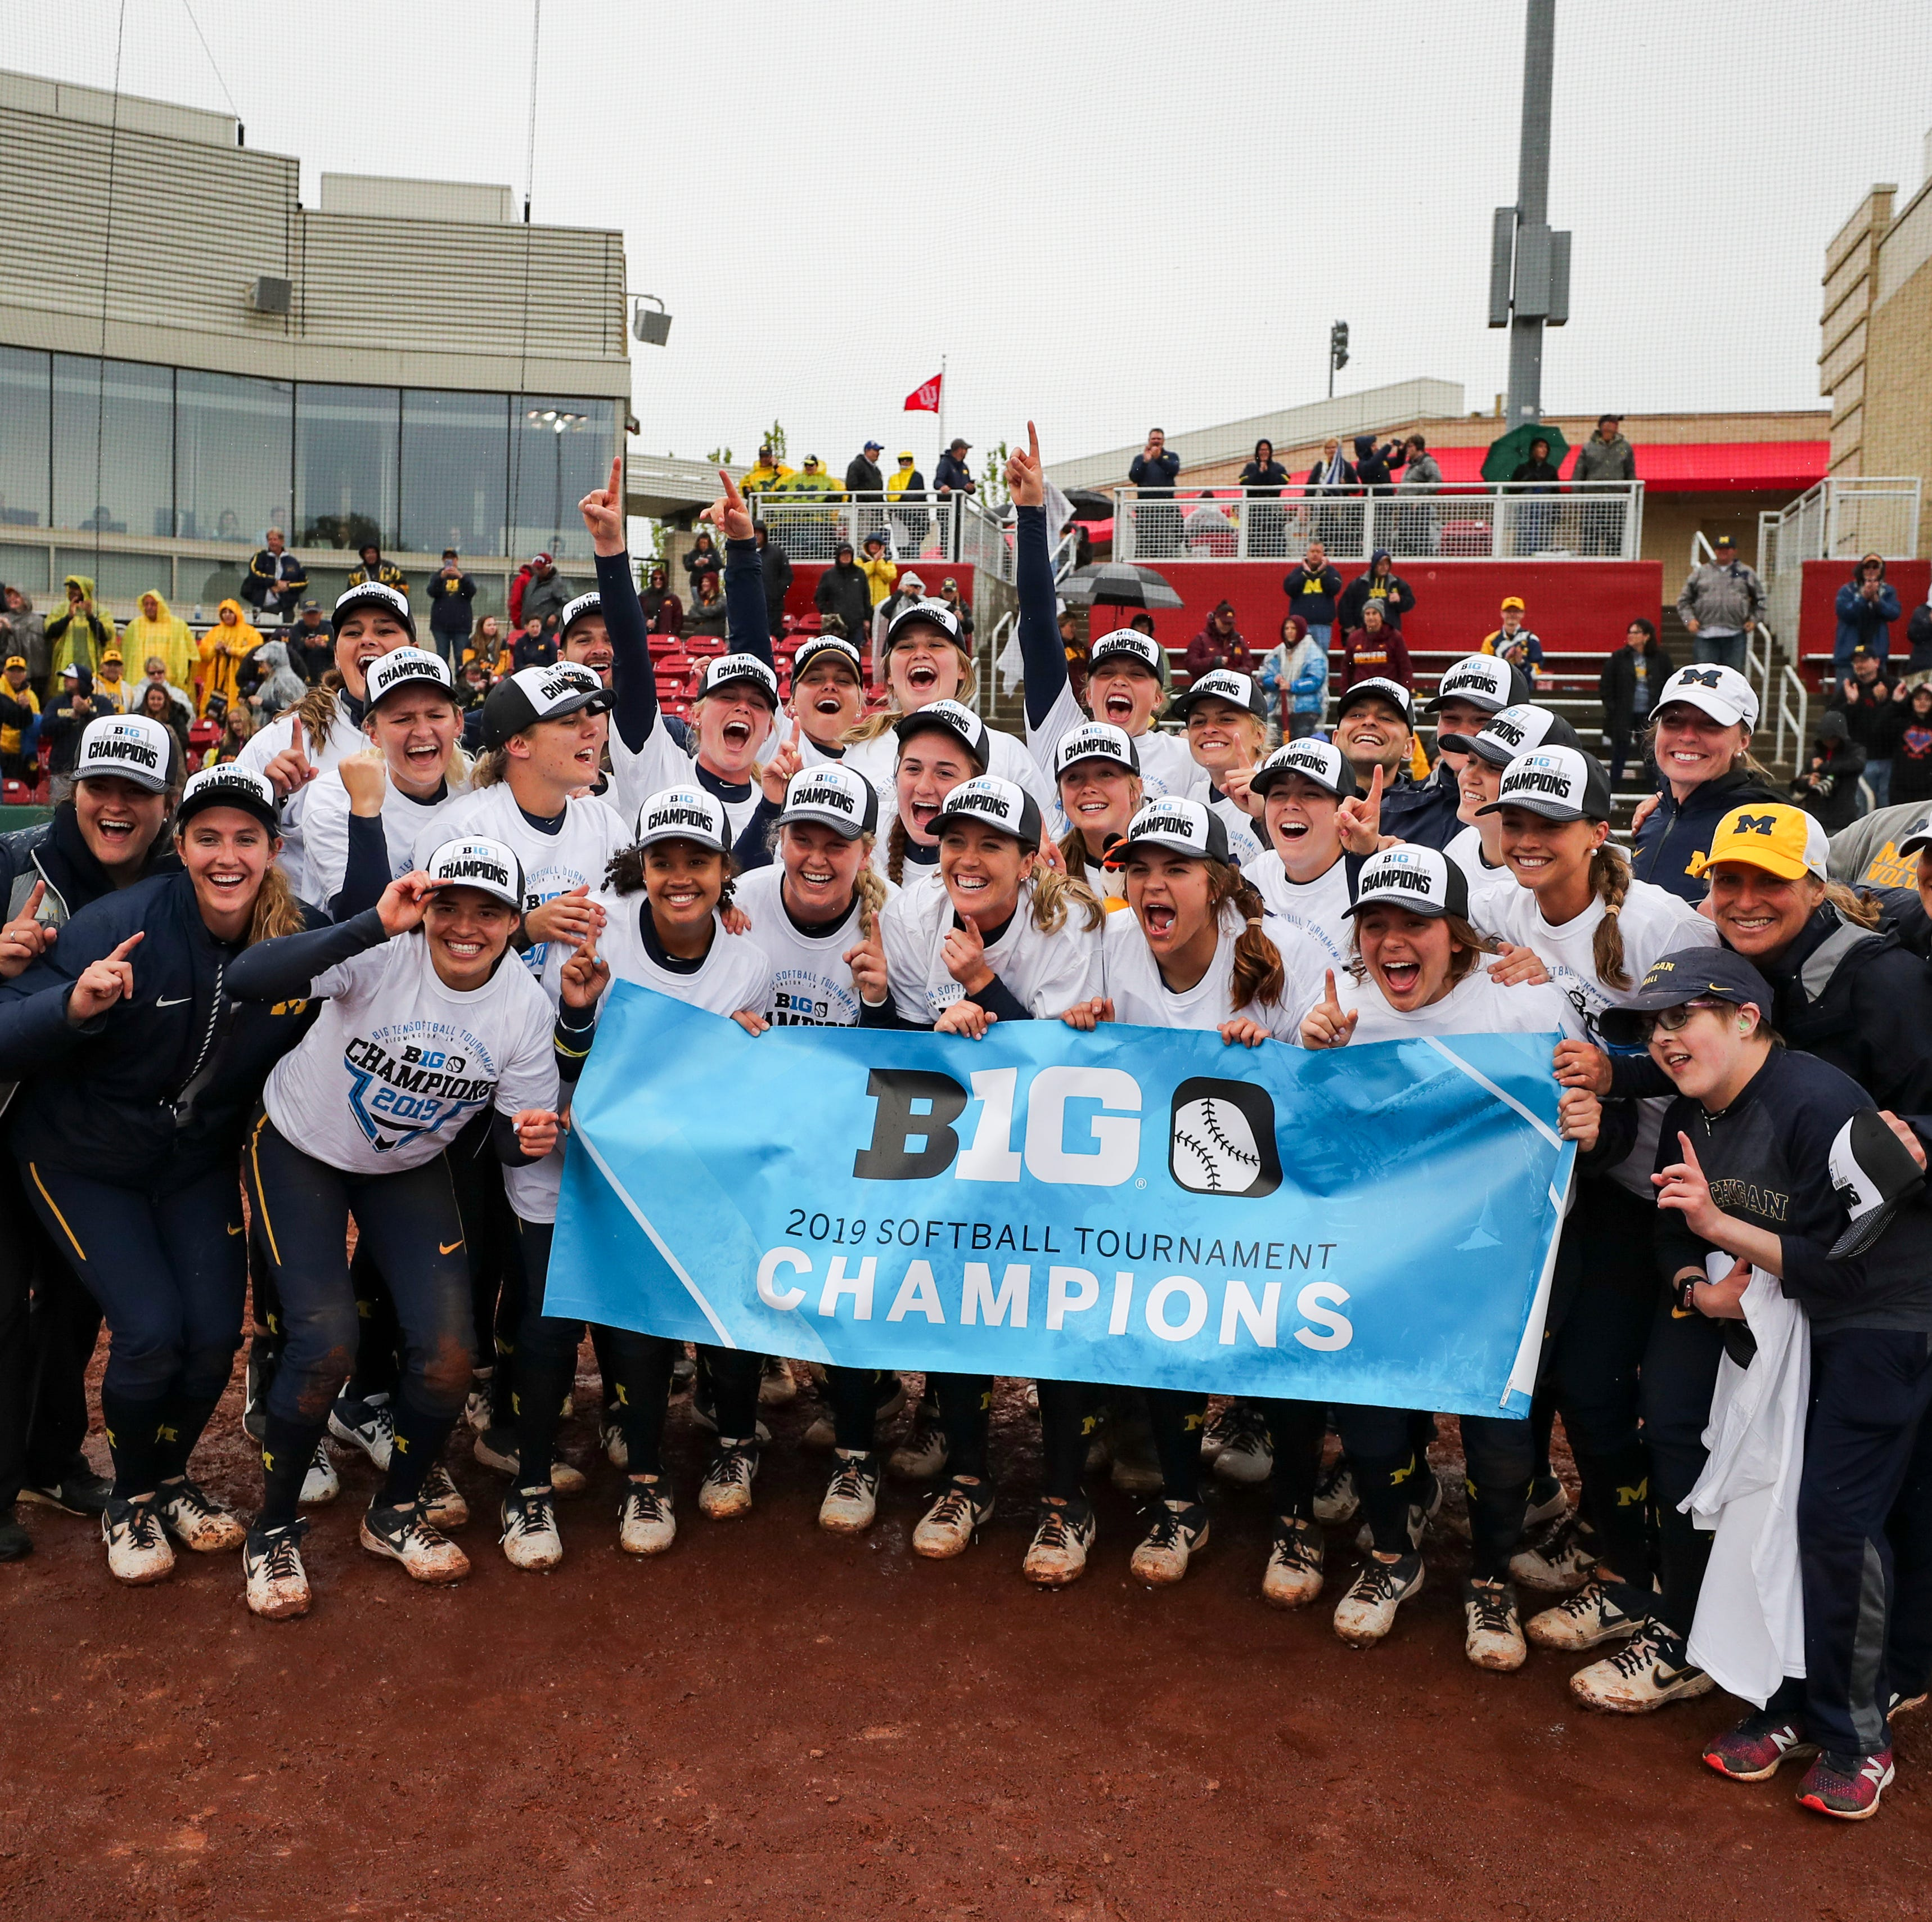 Michigan softball 1 win from Super Regional after thrilling walk-off